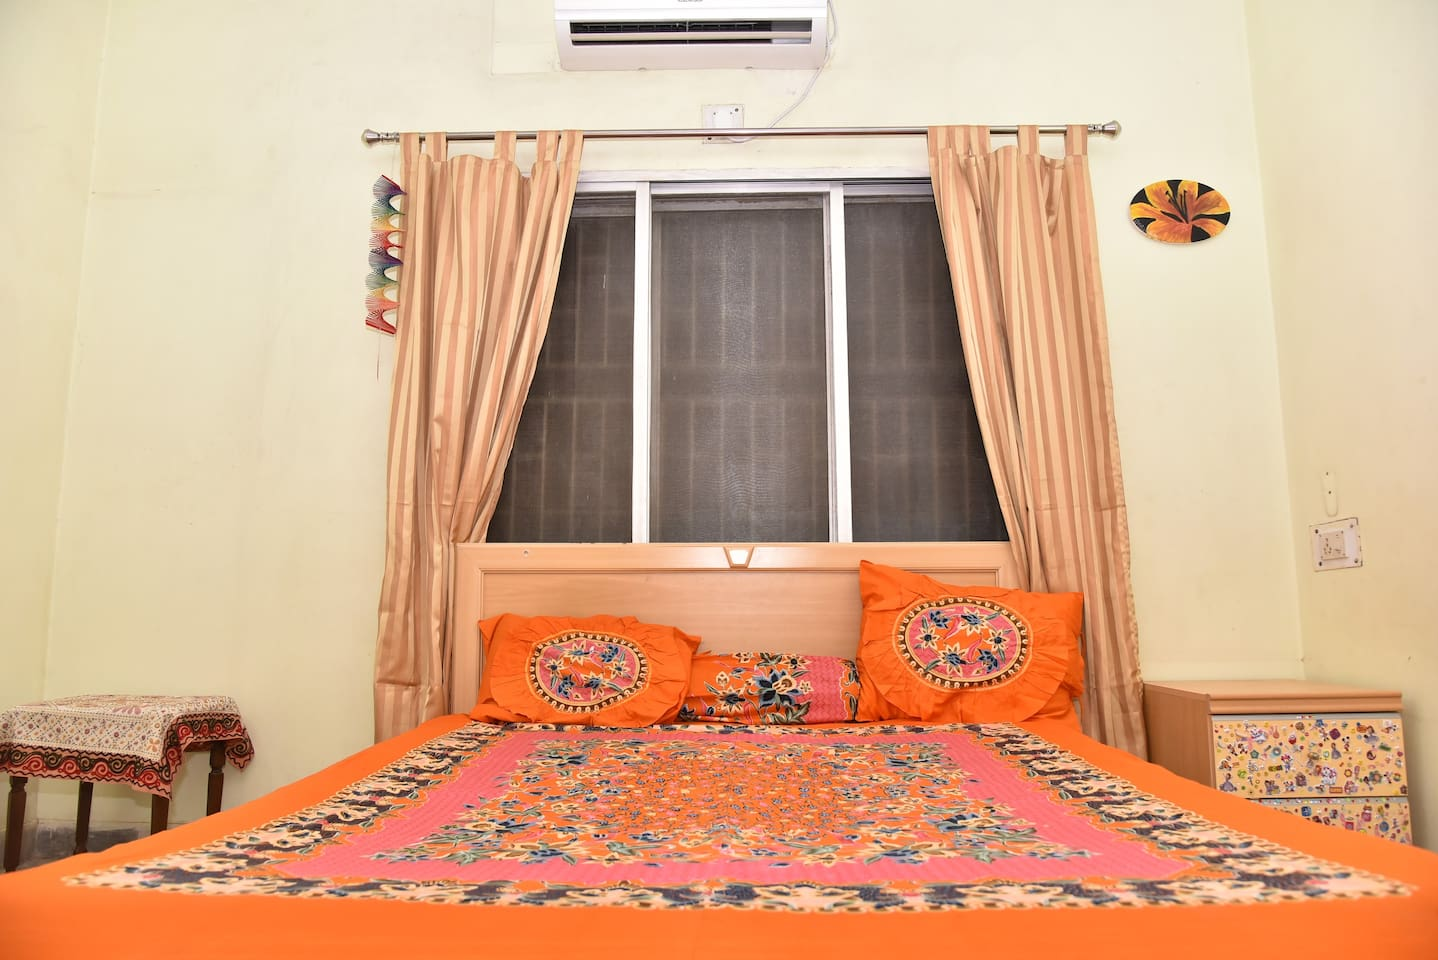 Soft pillows, comfy mattress, clean sheets, with ample lighting and comfortable side tables for all your belongings, make the bed a place to stay!